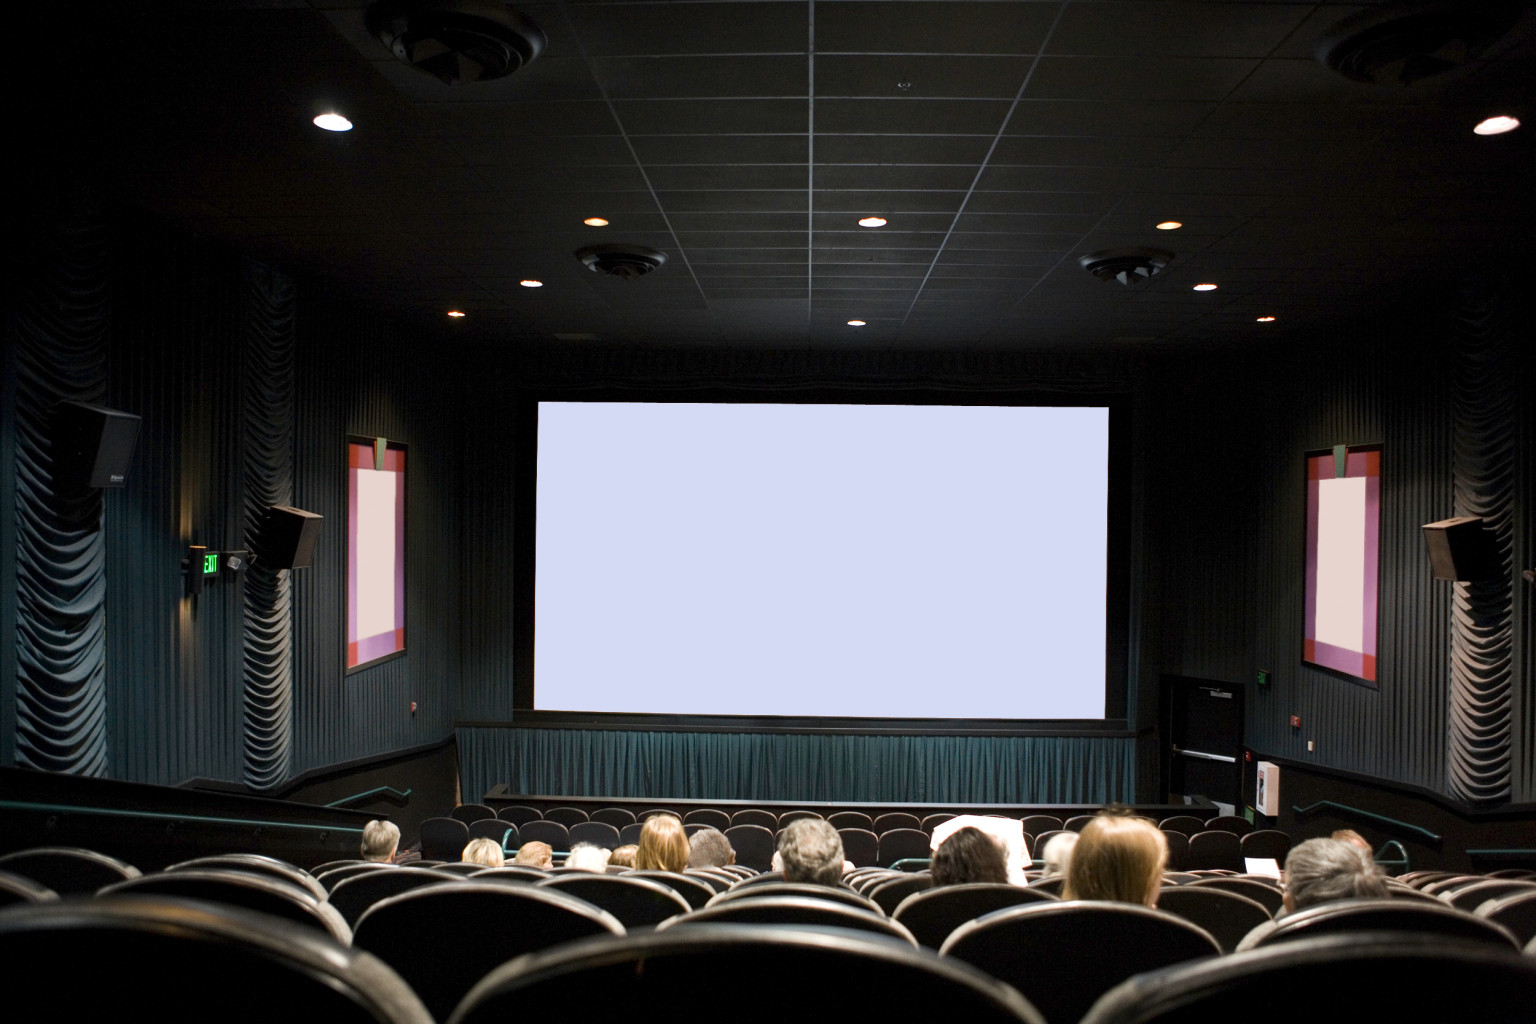 I dreamt I was in a crowded movie theater on opening night, I was.